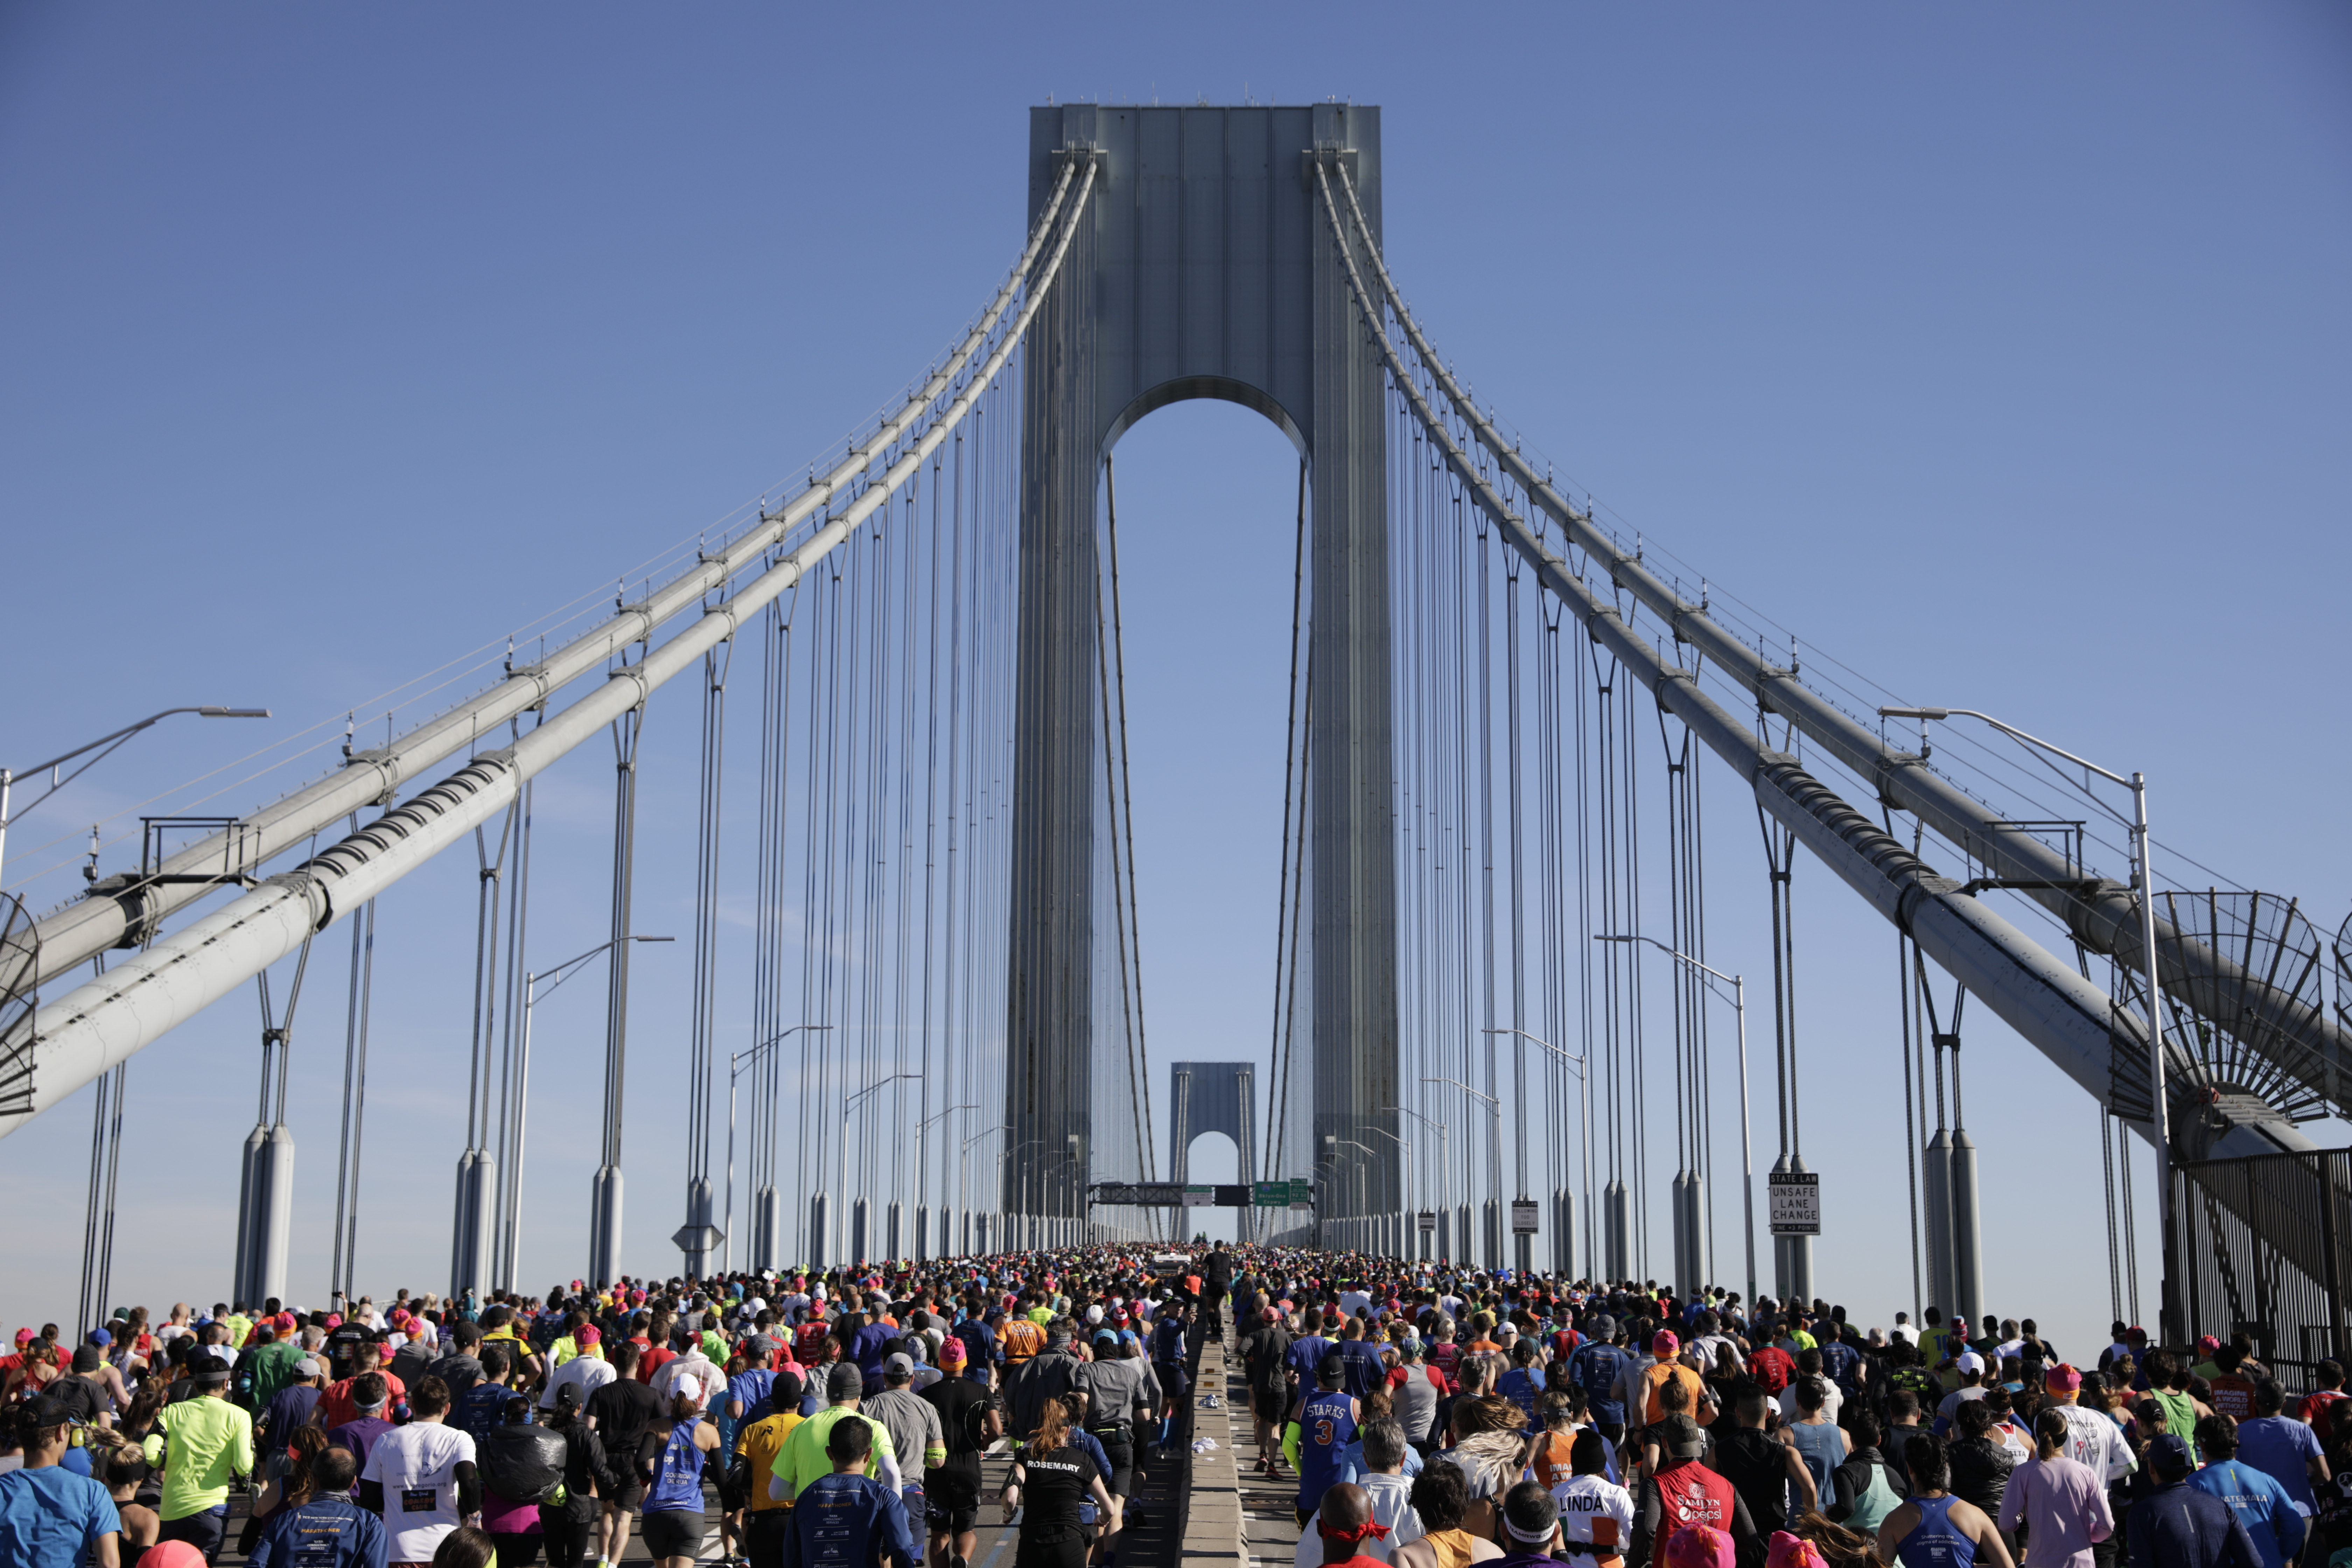 Runners crossing the Verrazano-Narrows Bridge during the TCS New York City Marathon